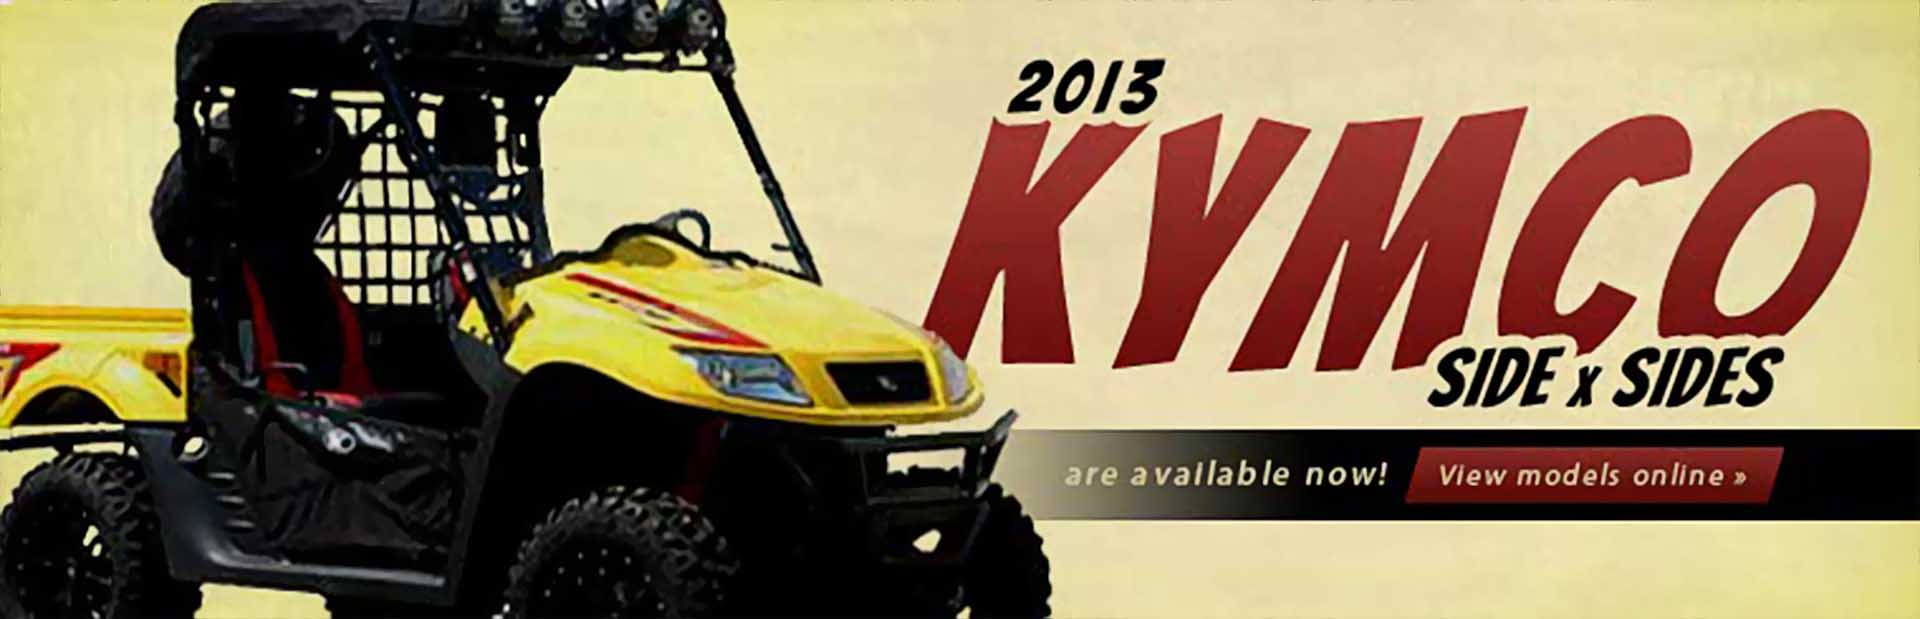 Click here to view the 2013 KYMCO side x sides.